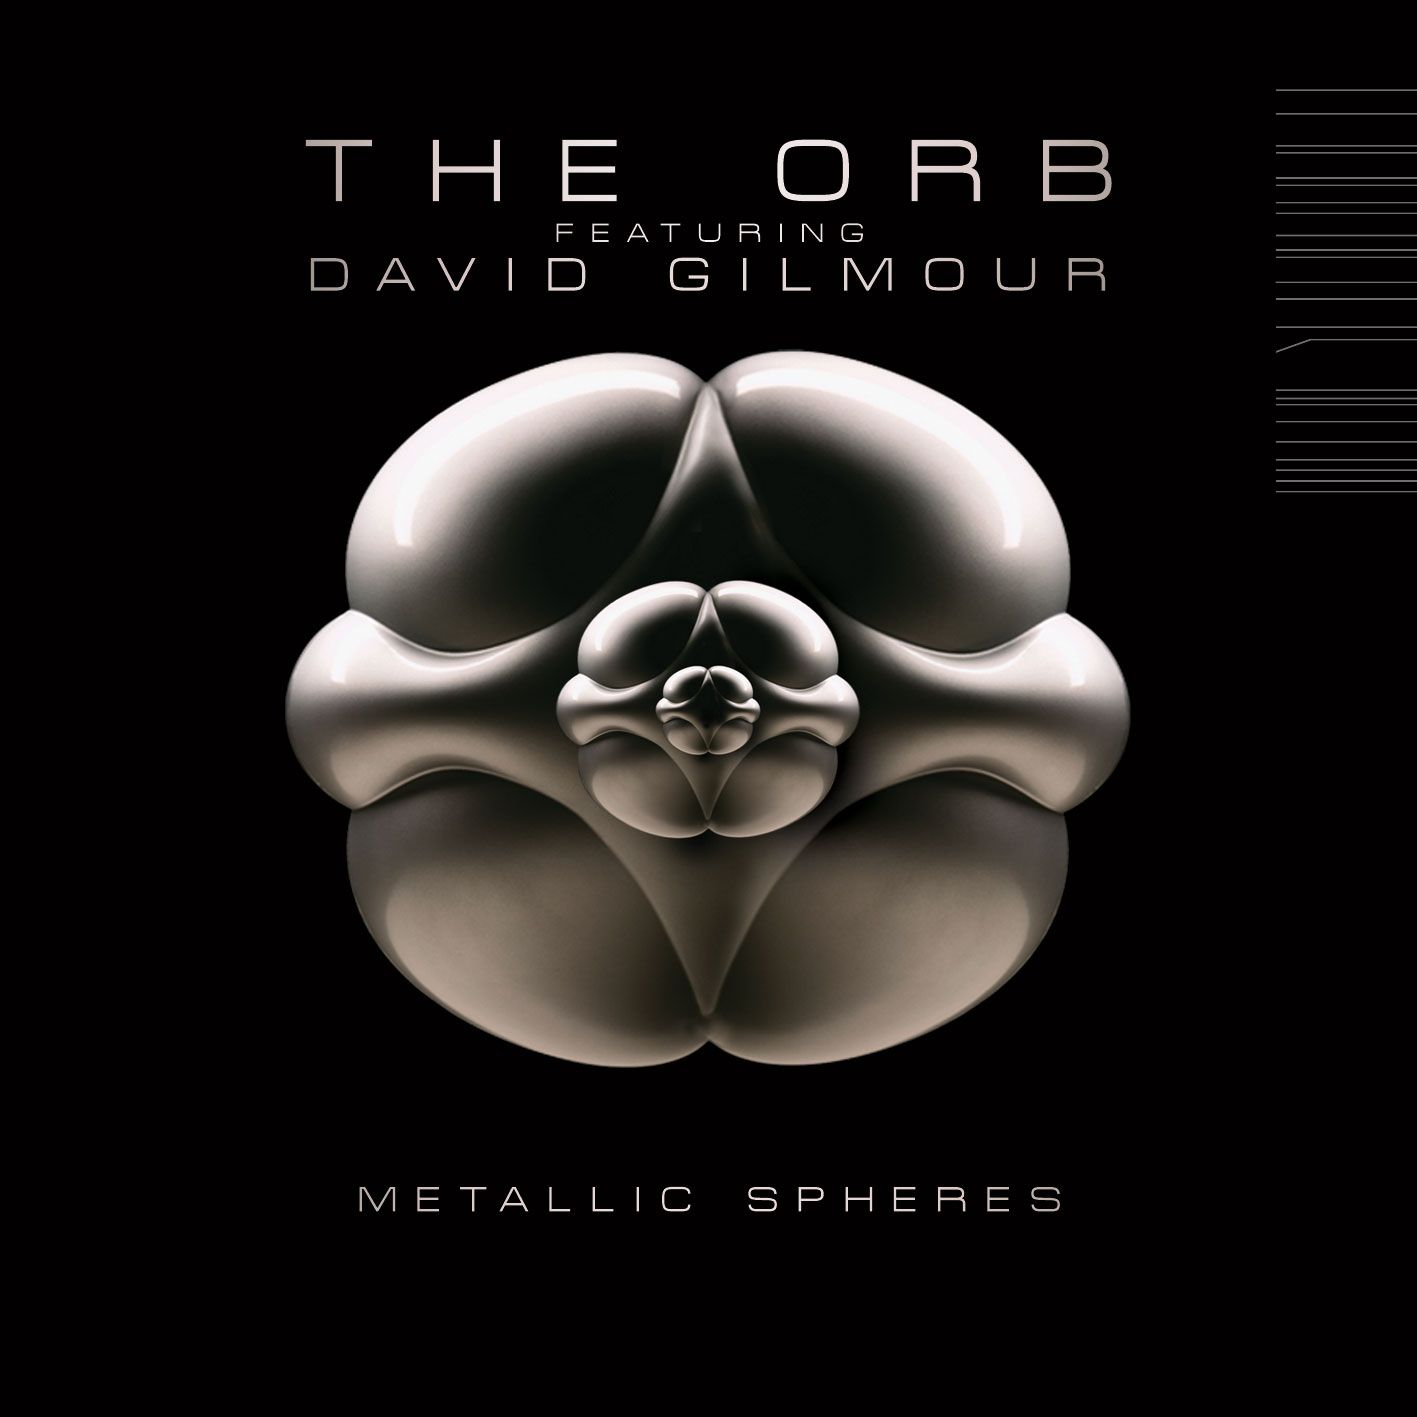 The+Orb+Featuring+David+Gilmour+%E2%80%93+Metallic+Spheres++2010+poster.jpg